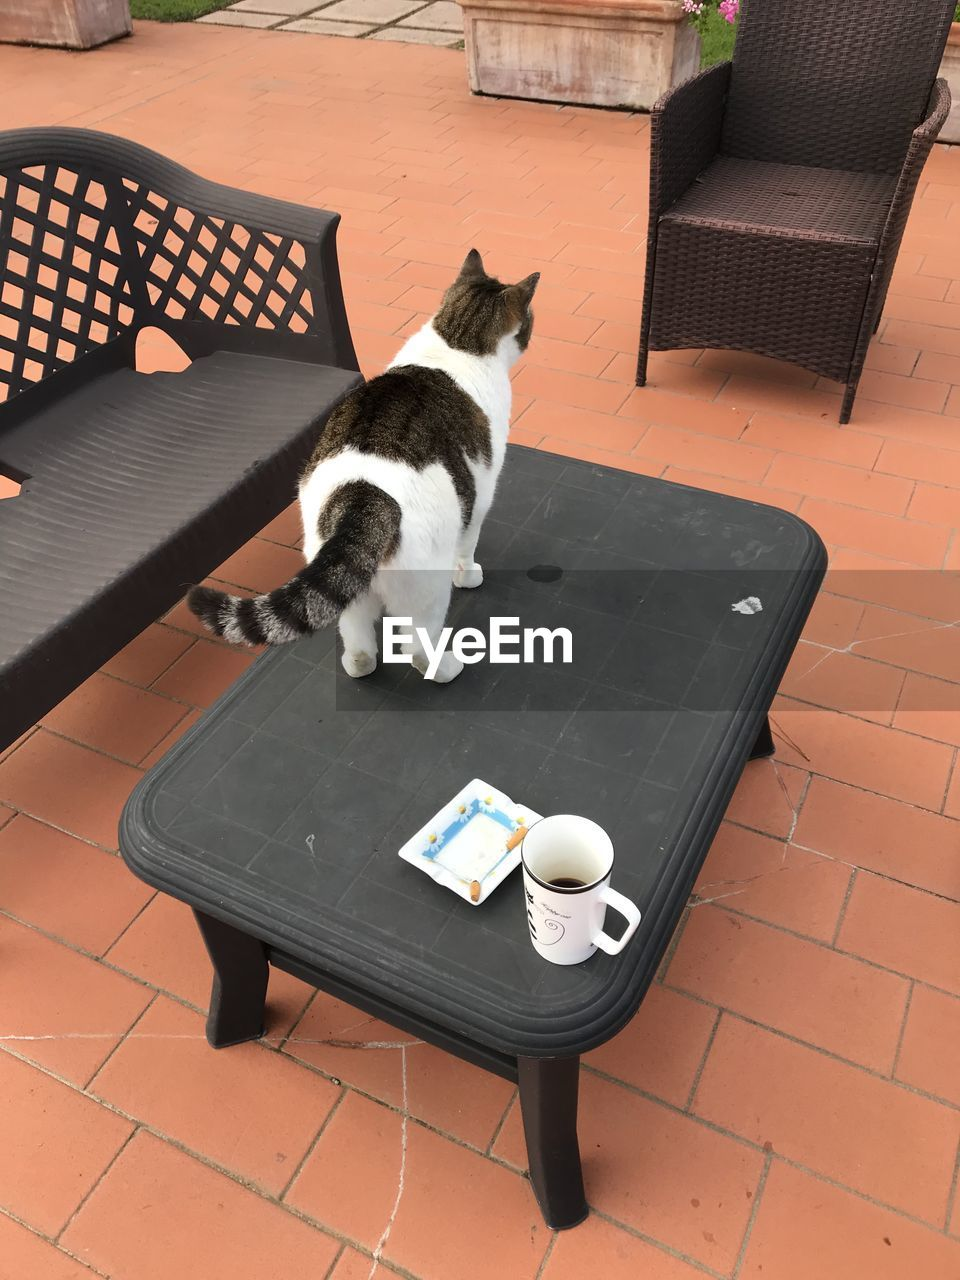 domestic, domestic animals, cat, pets, mammal, domestic cat, animal themes, feline, animal, one animal, vertebrate, table, seat, high angle view, no people, chair, sitting, food and drink, drink, relaxation, tiled floor